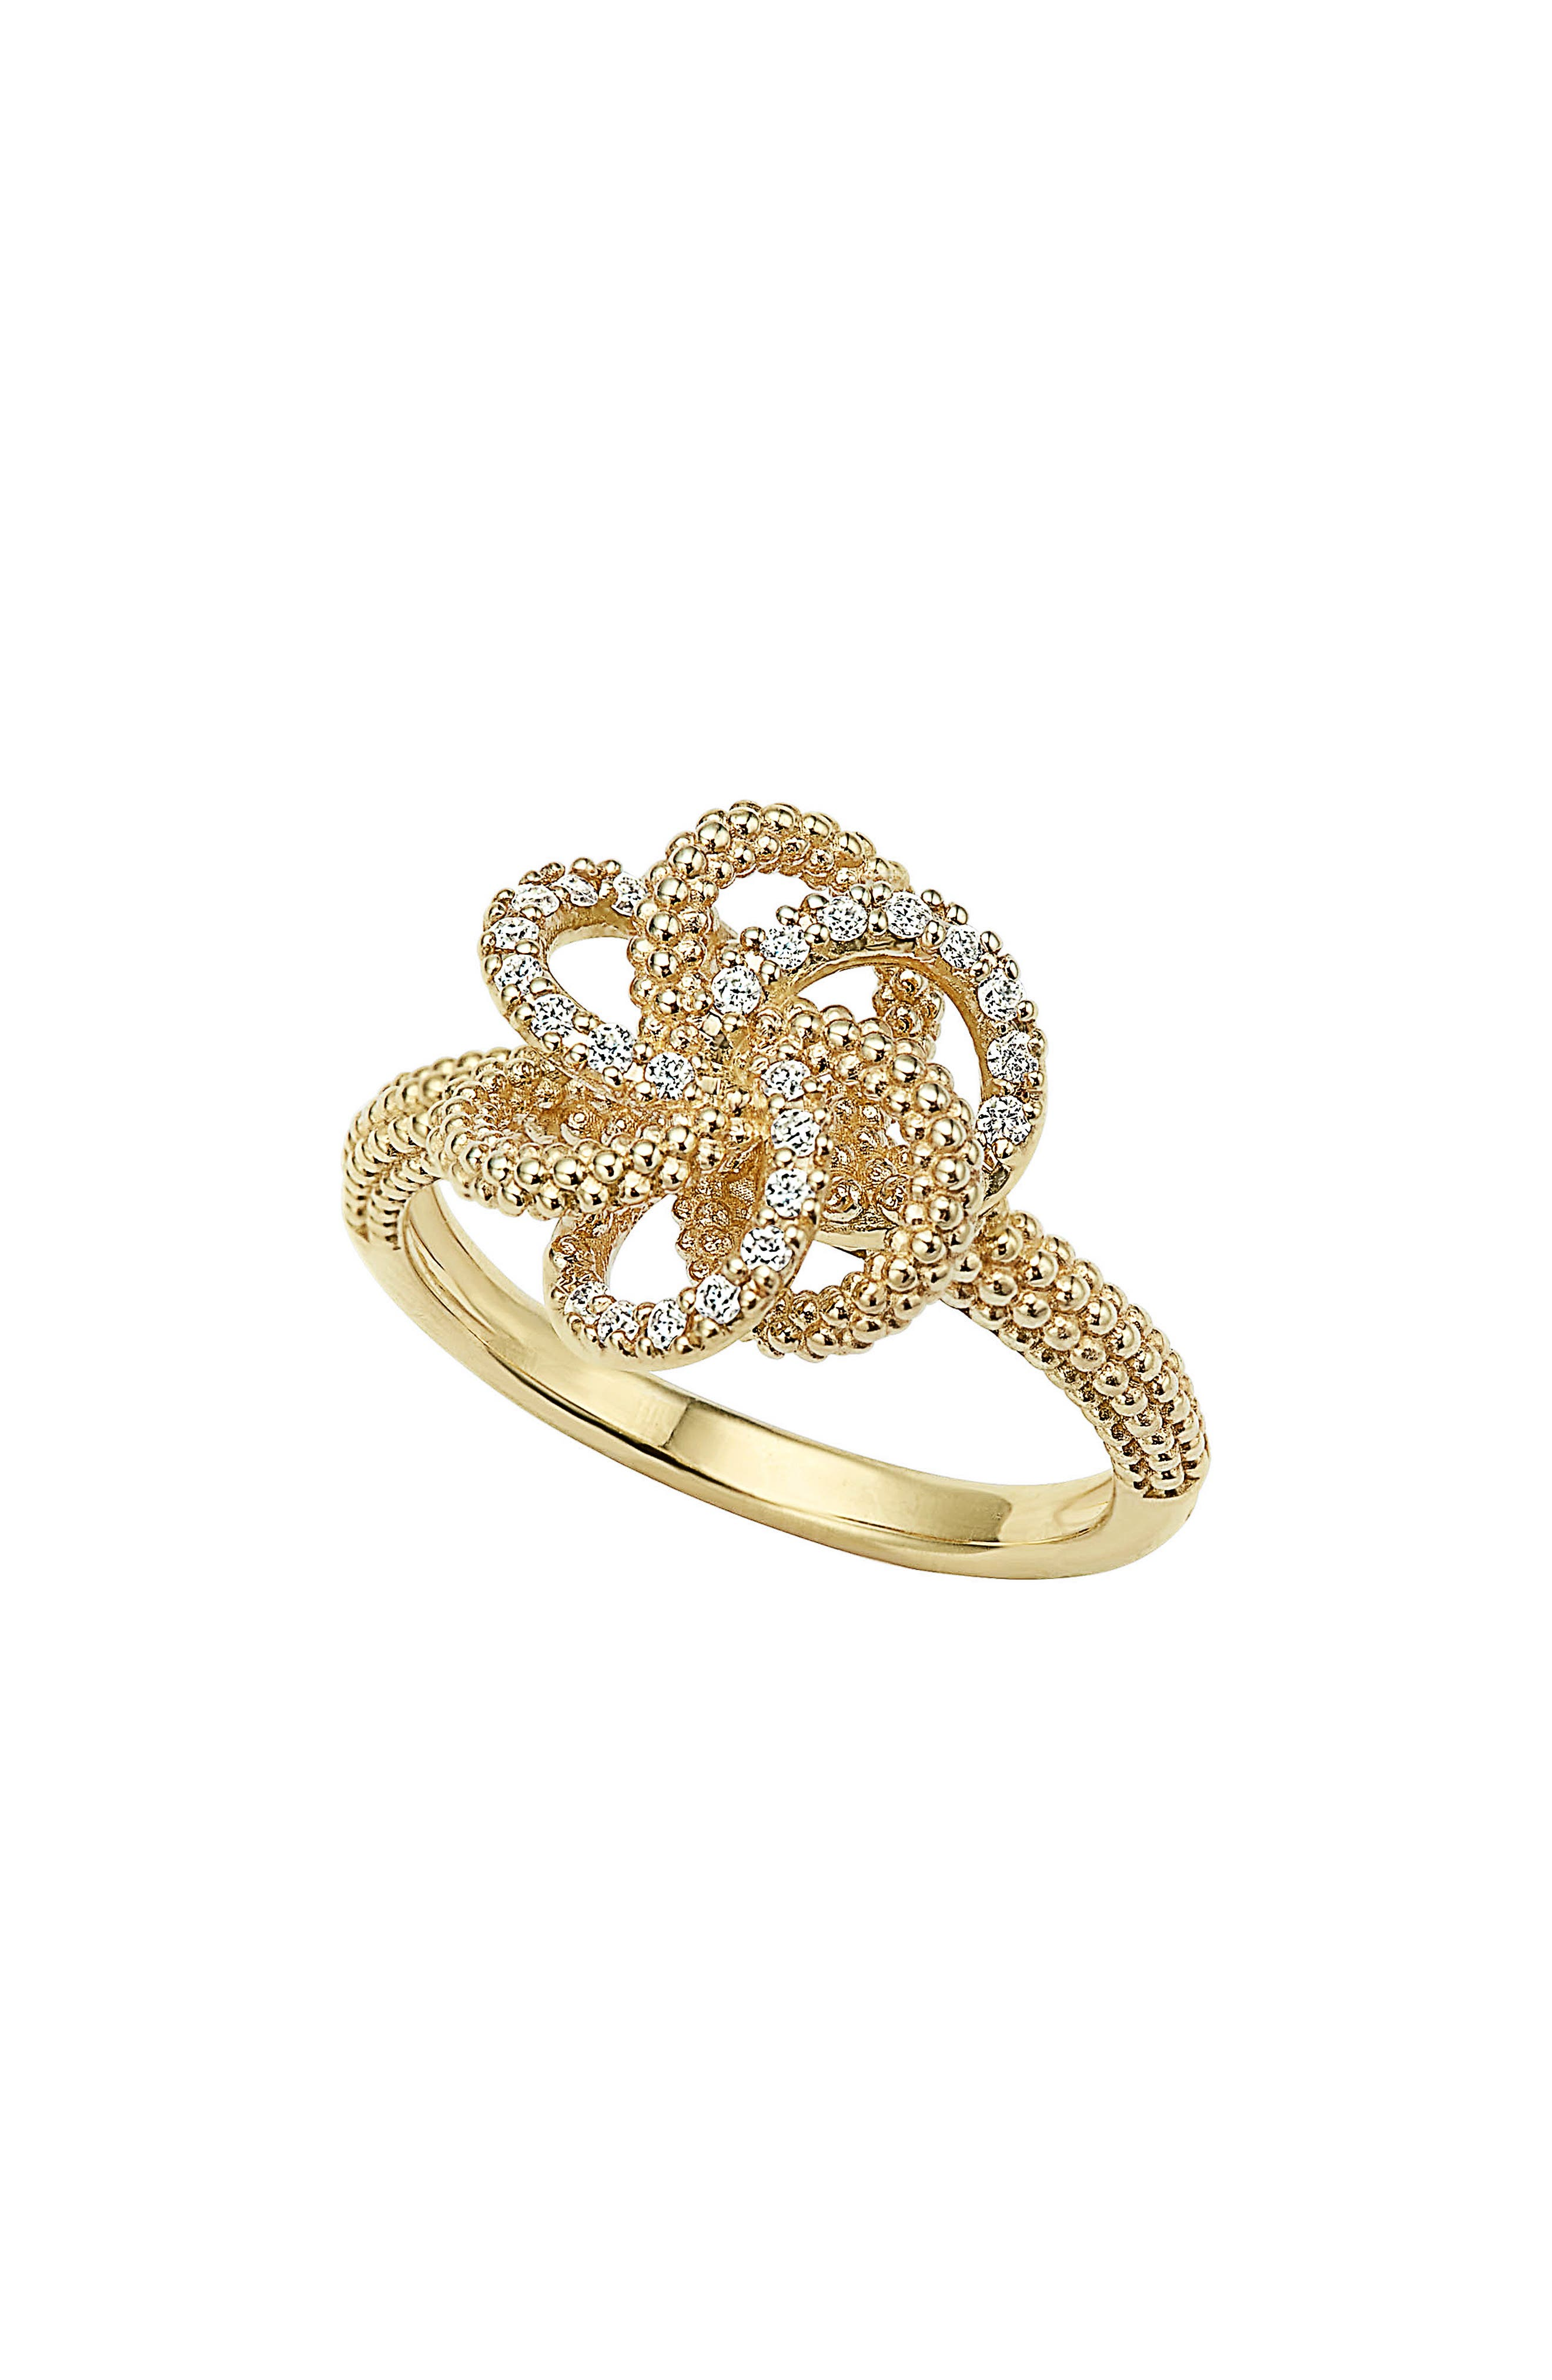 Alternate Image 1 Selected - LAGOS 'Love Knot' Diamond Ring